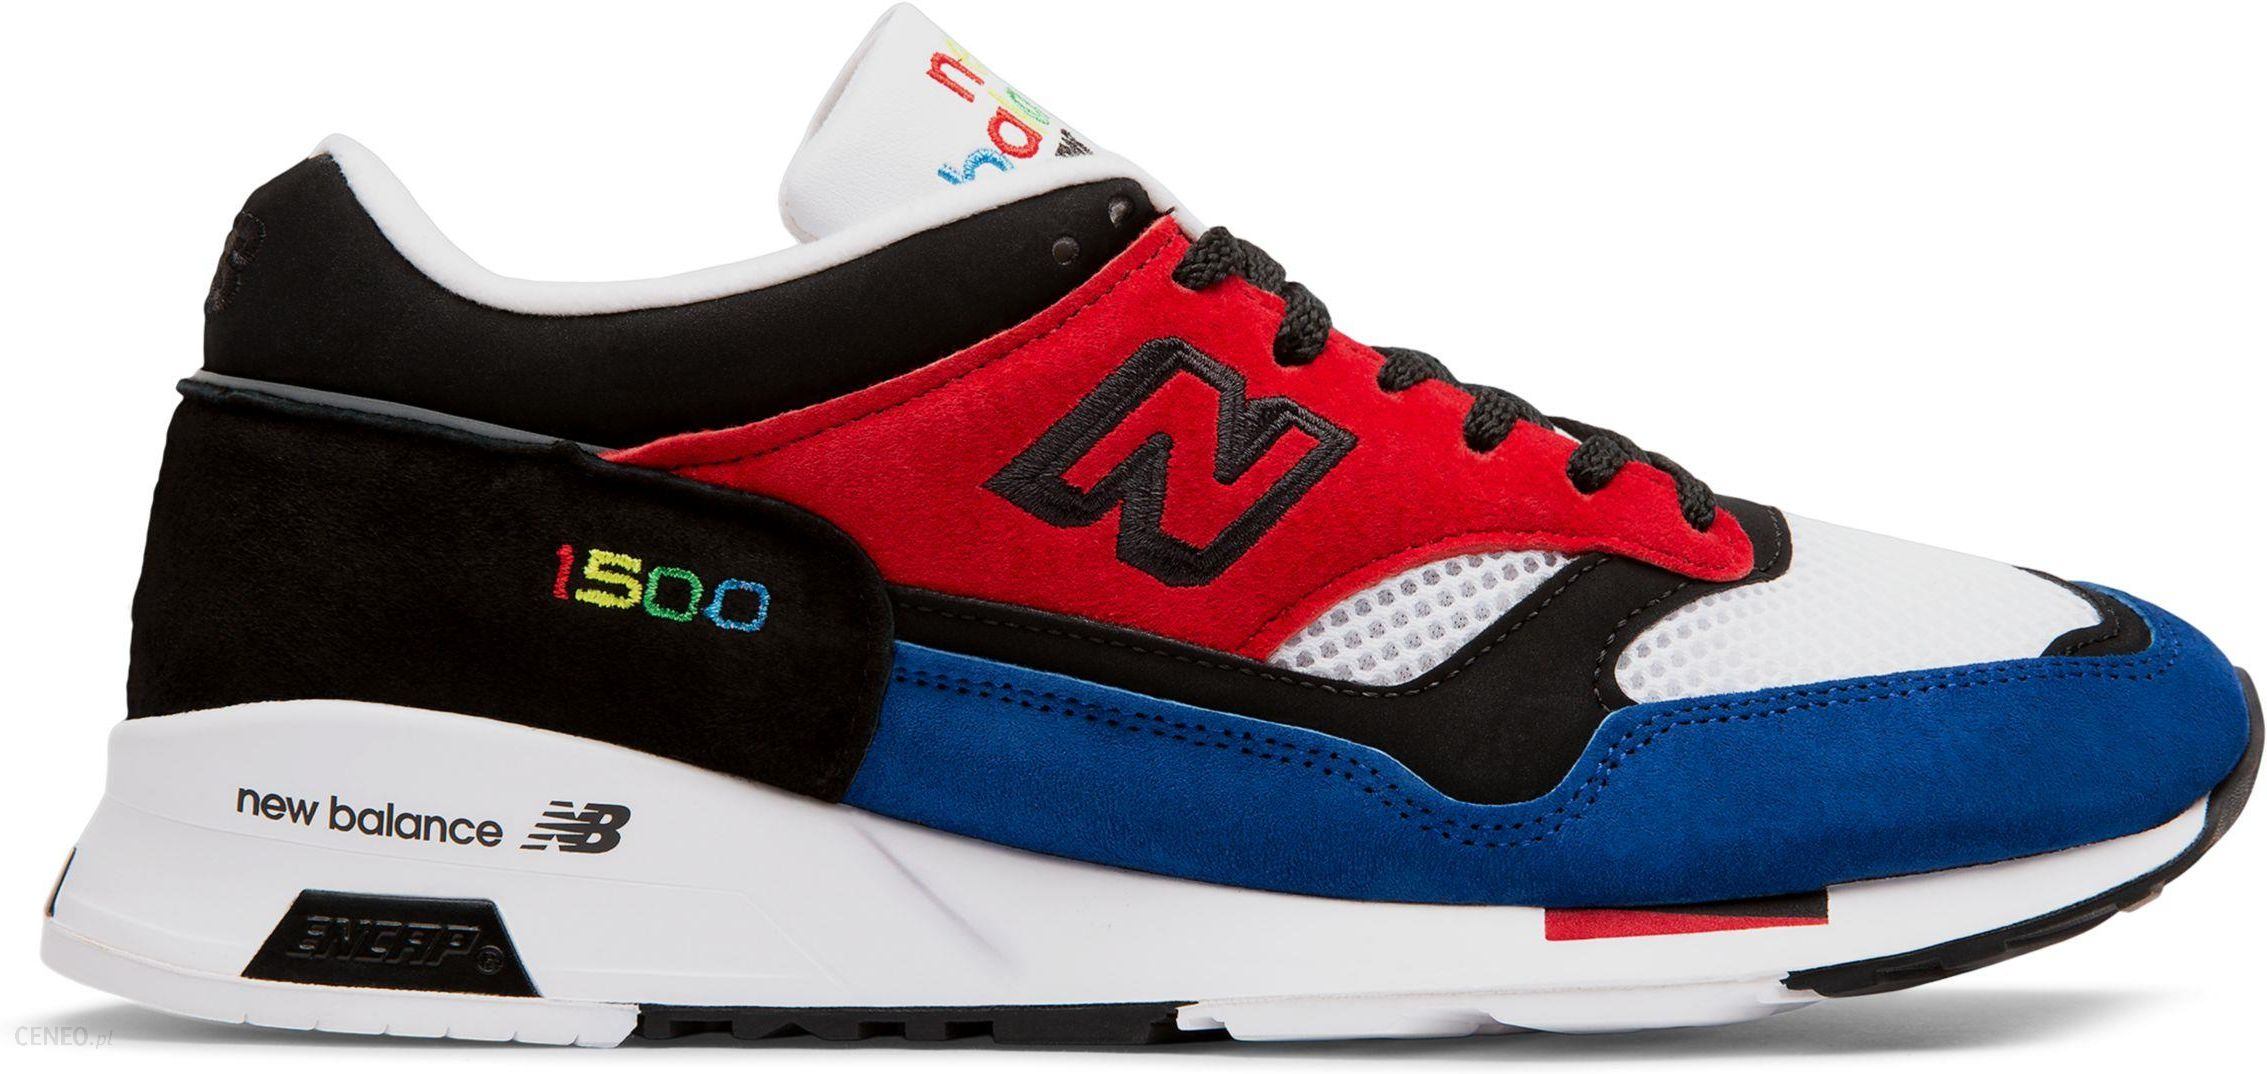 newest d6e48 5a079 New Balance Color Prisma Made in UK 1500 - Ceneo.pl